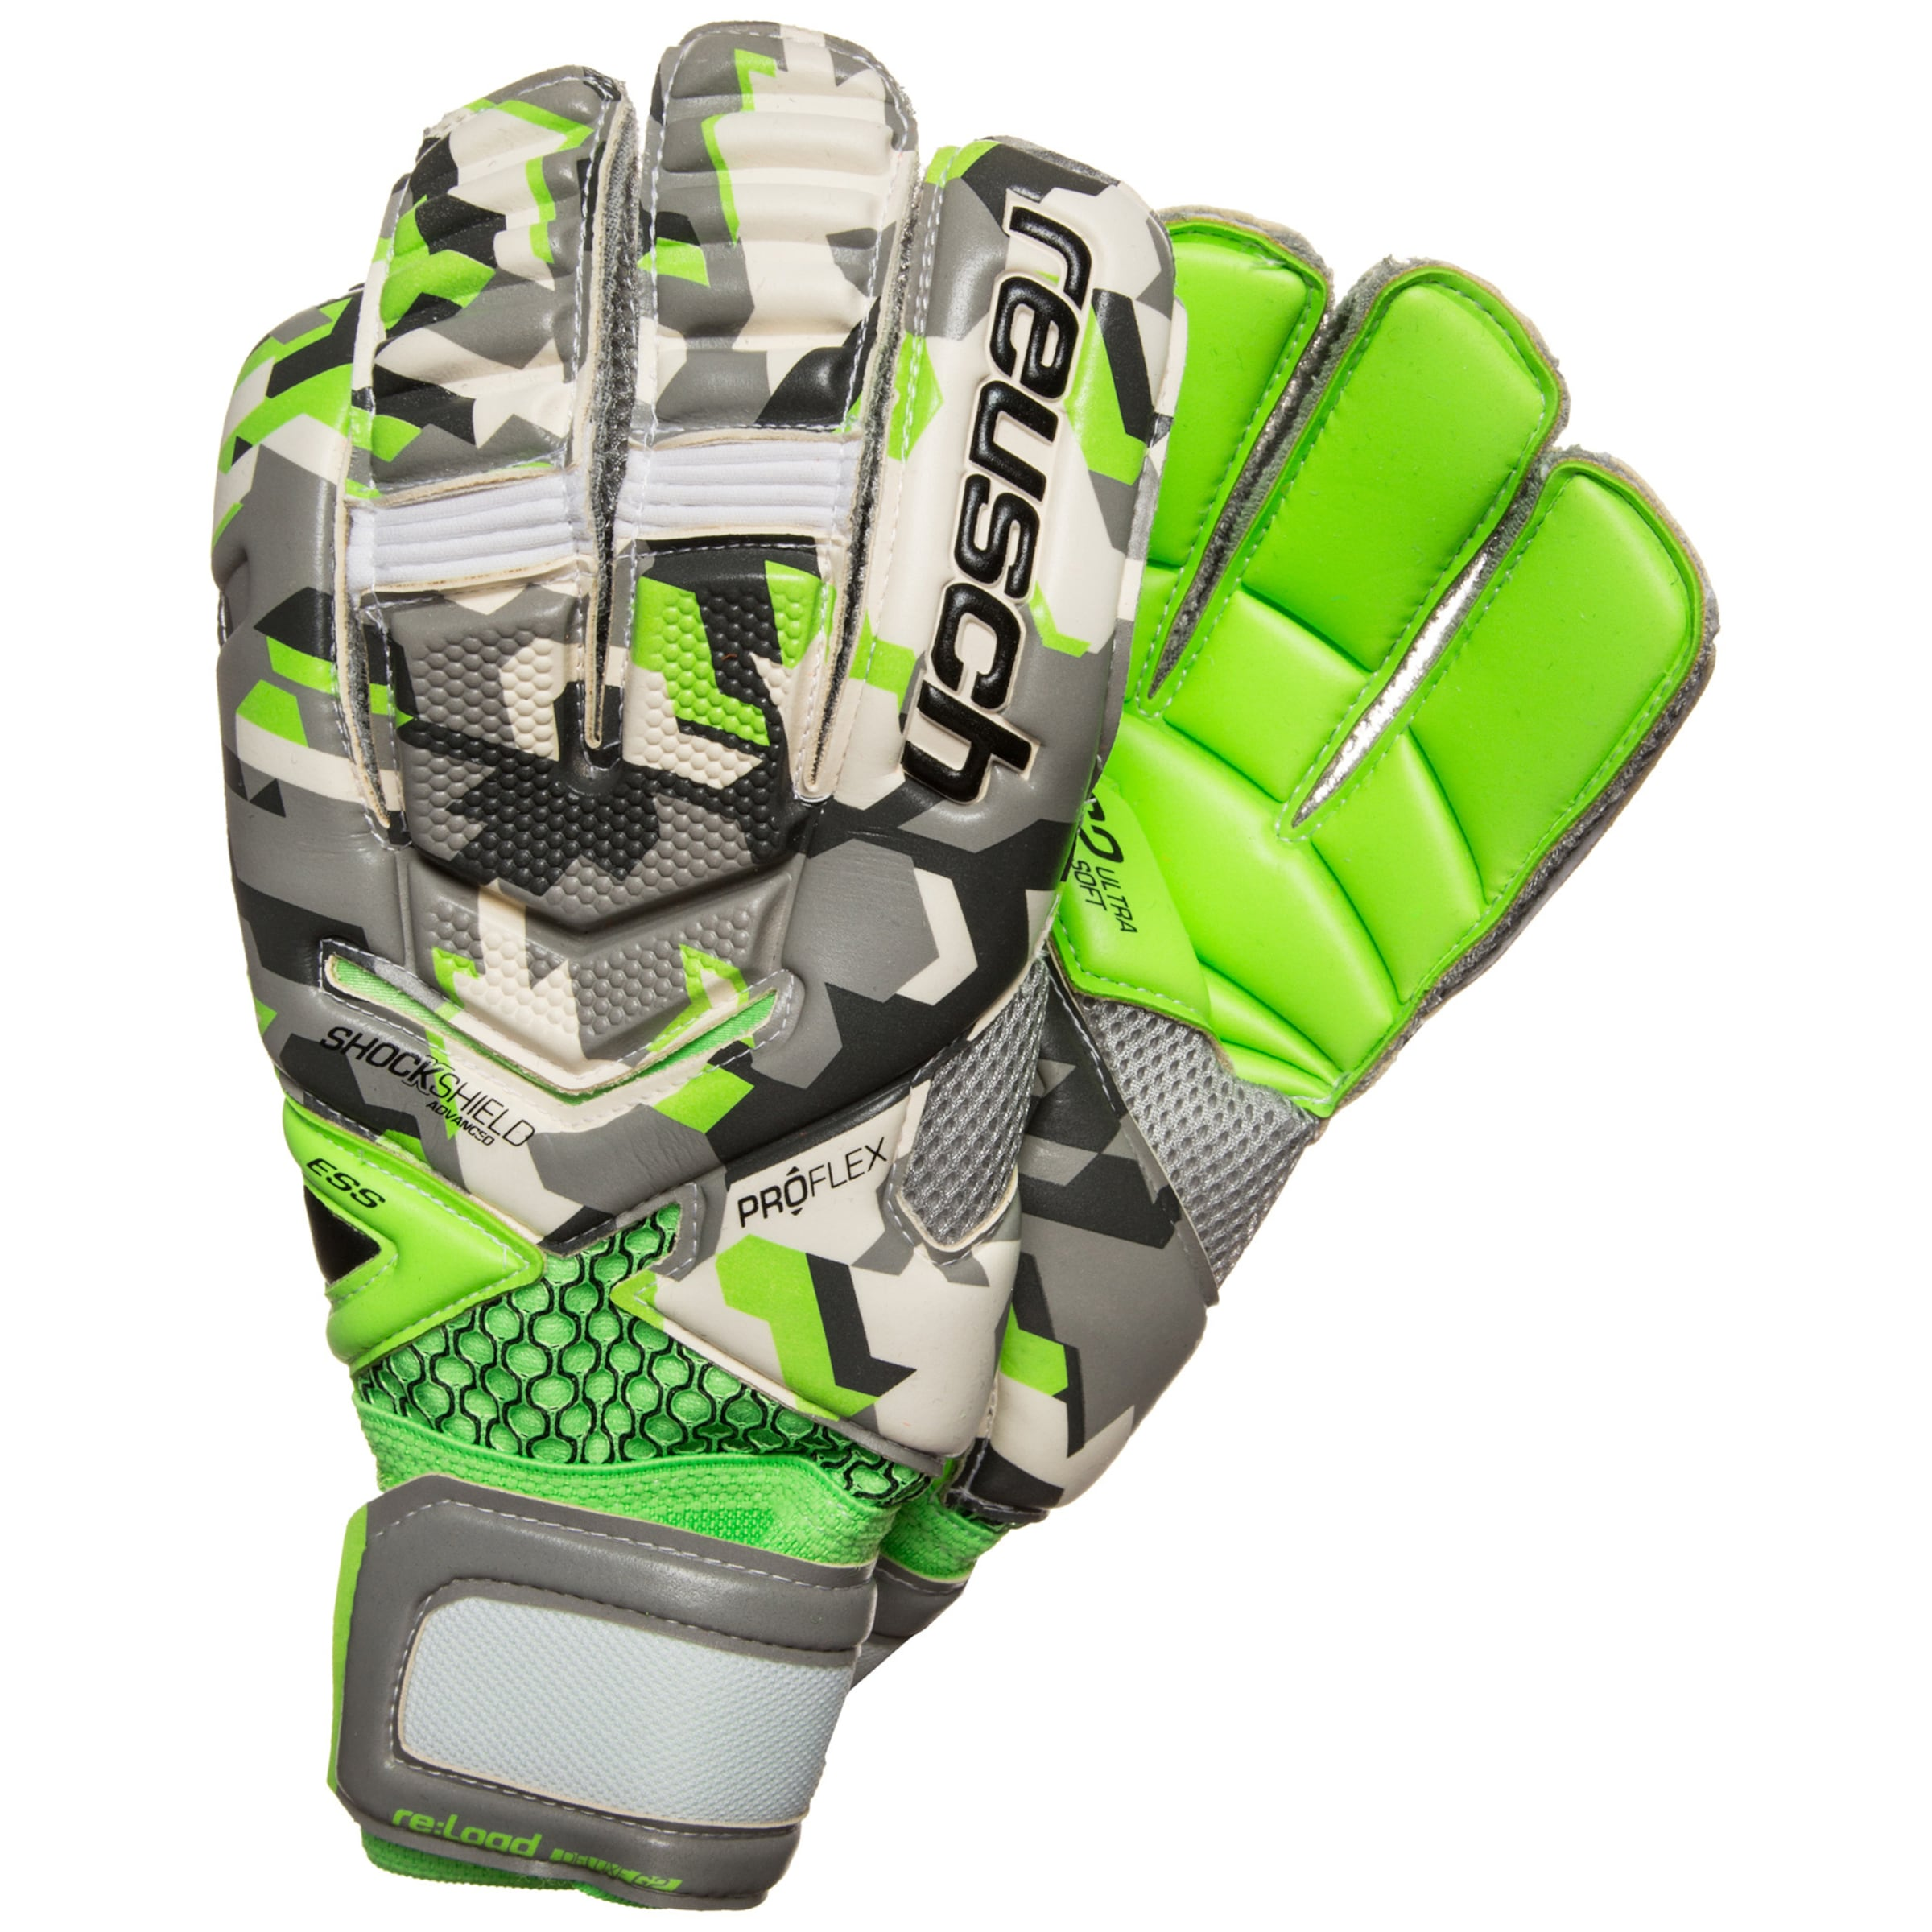 Reusch load In 're G2' GrauNeongrün Deluxe Torwarthandschuh wm0nNv8